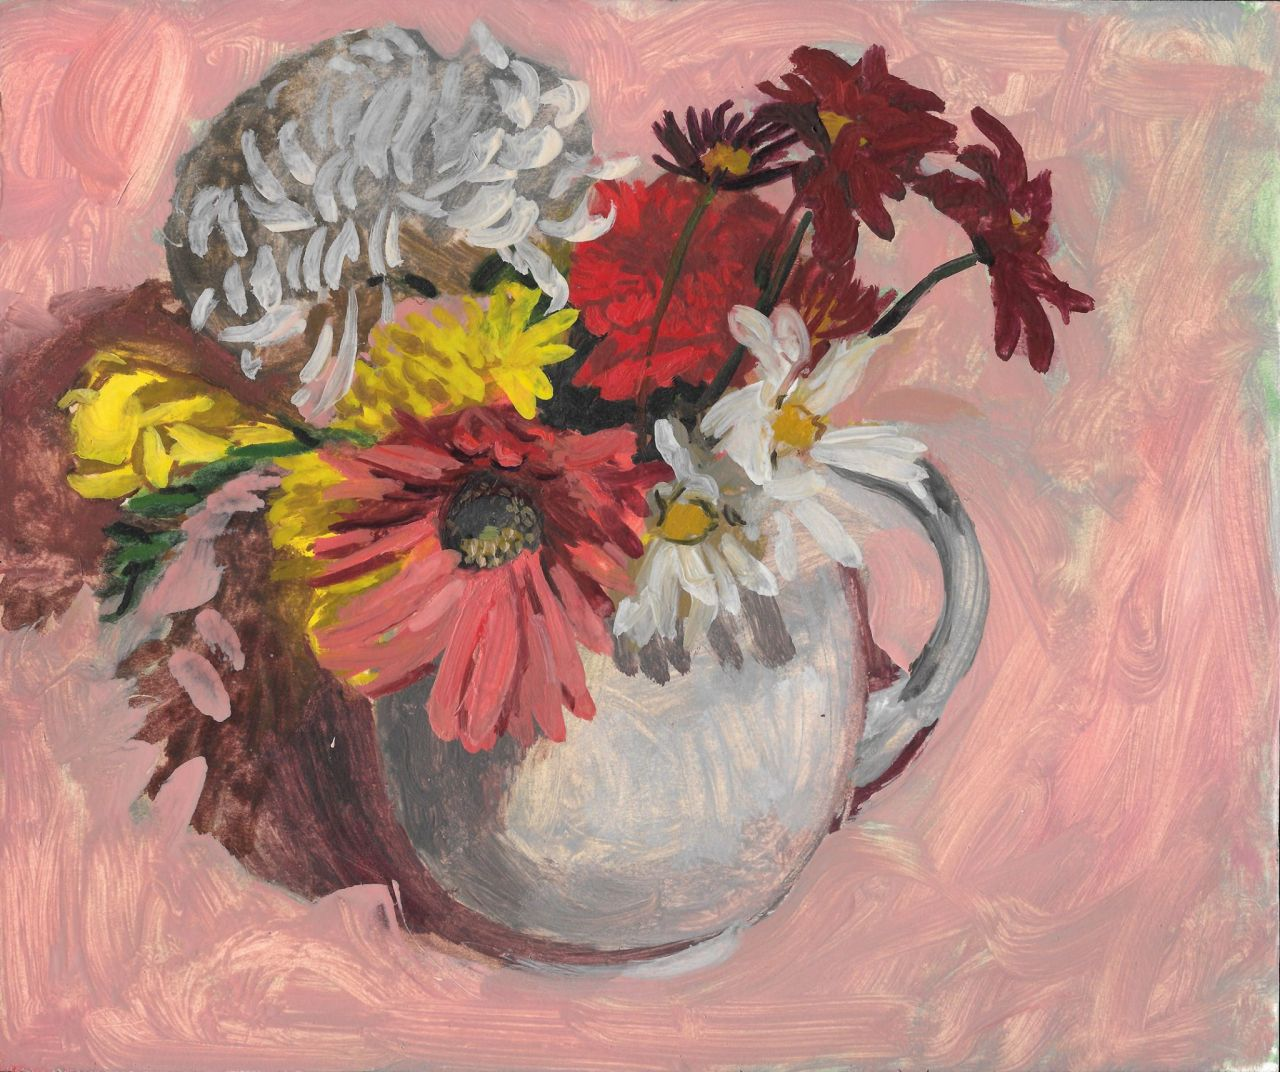 Ken KewleyBouquet on Pink.1985oil on paper board, 8 x 10 inches